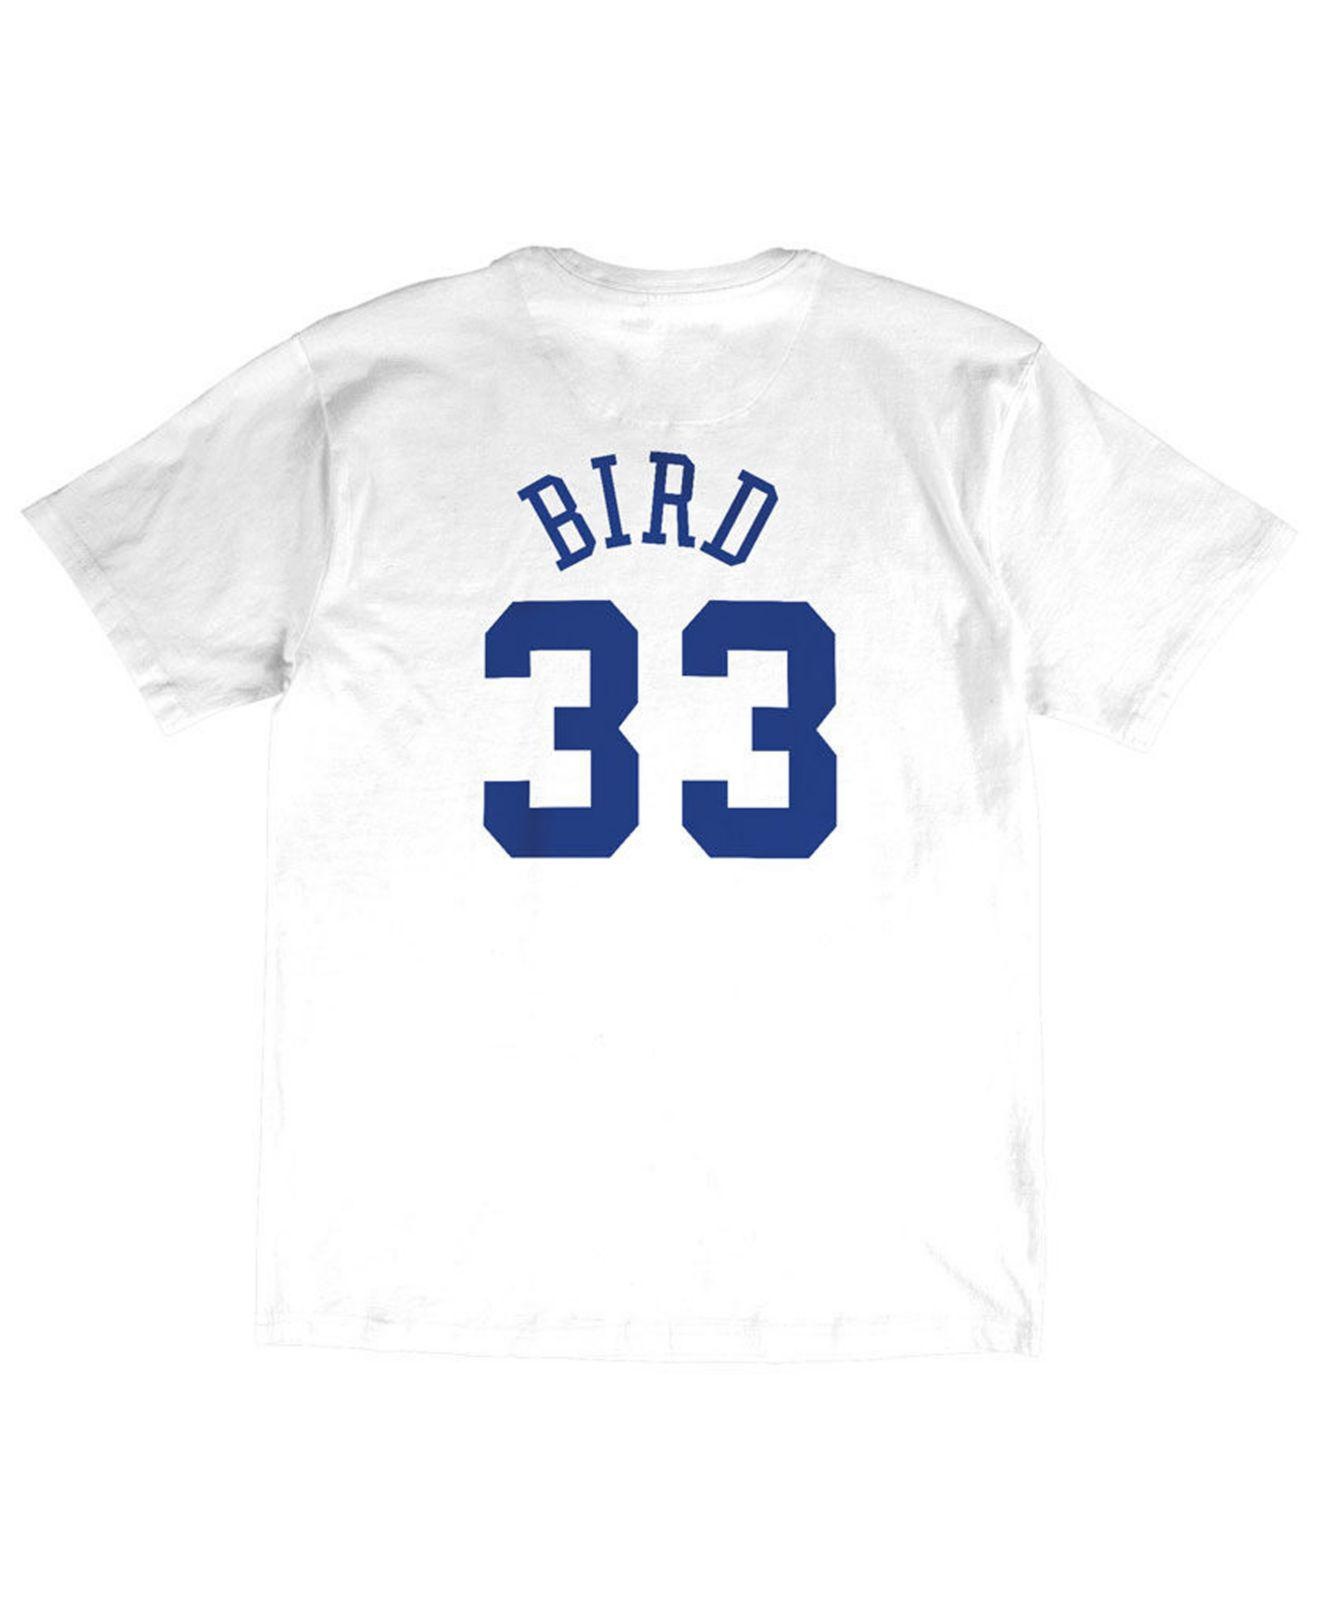 outlet store 4d213 c85f1 Men's White Larry Bird Nba All Star 1990 Name & Number Traditional T-shirt